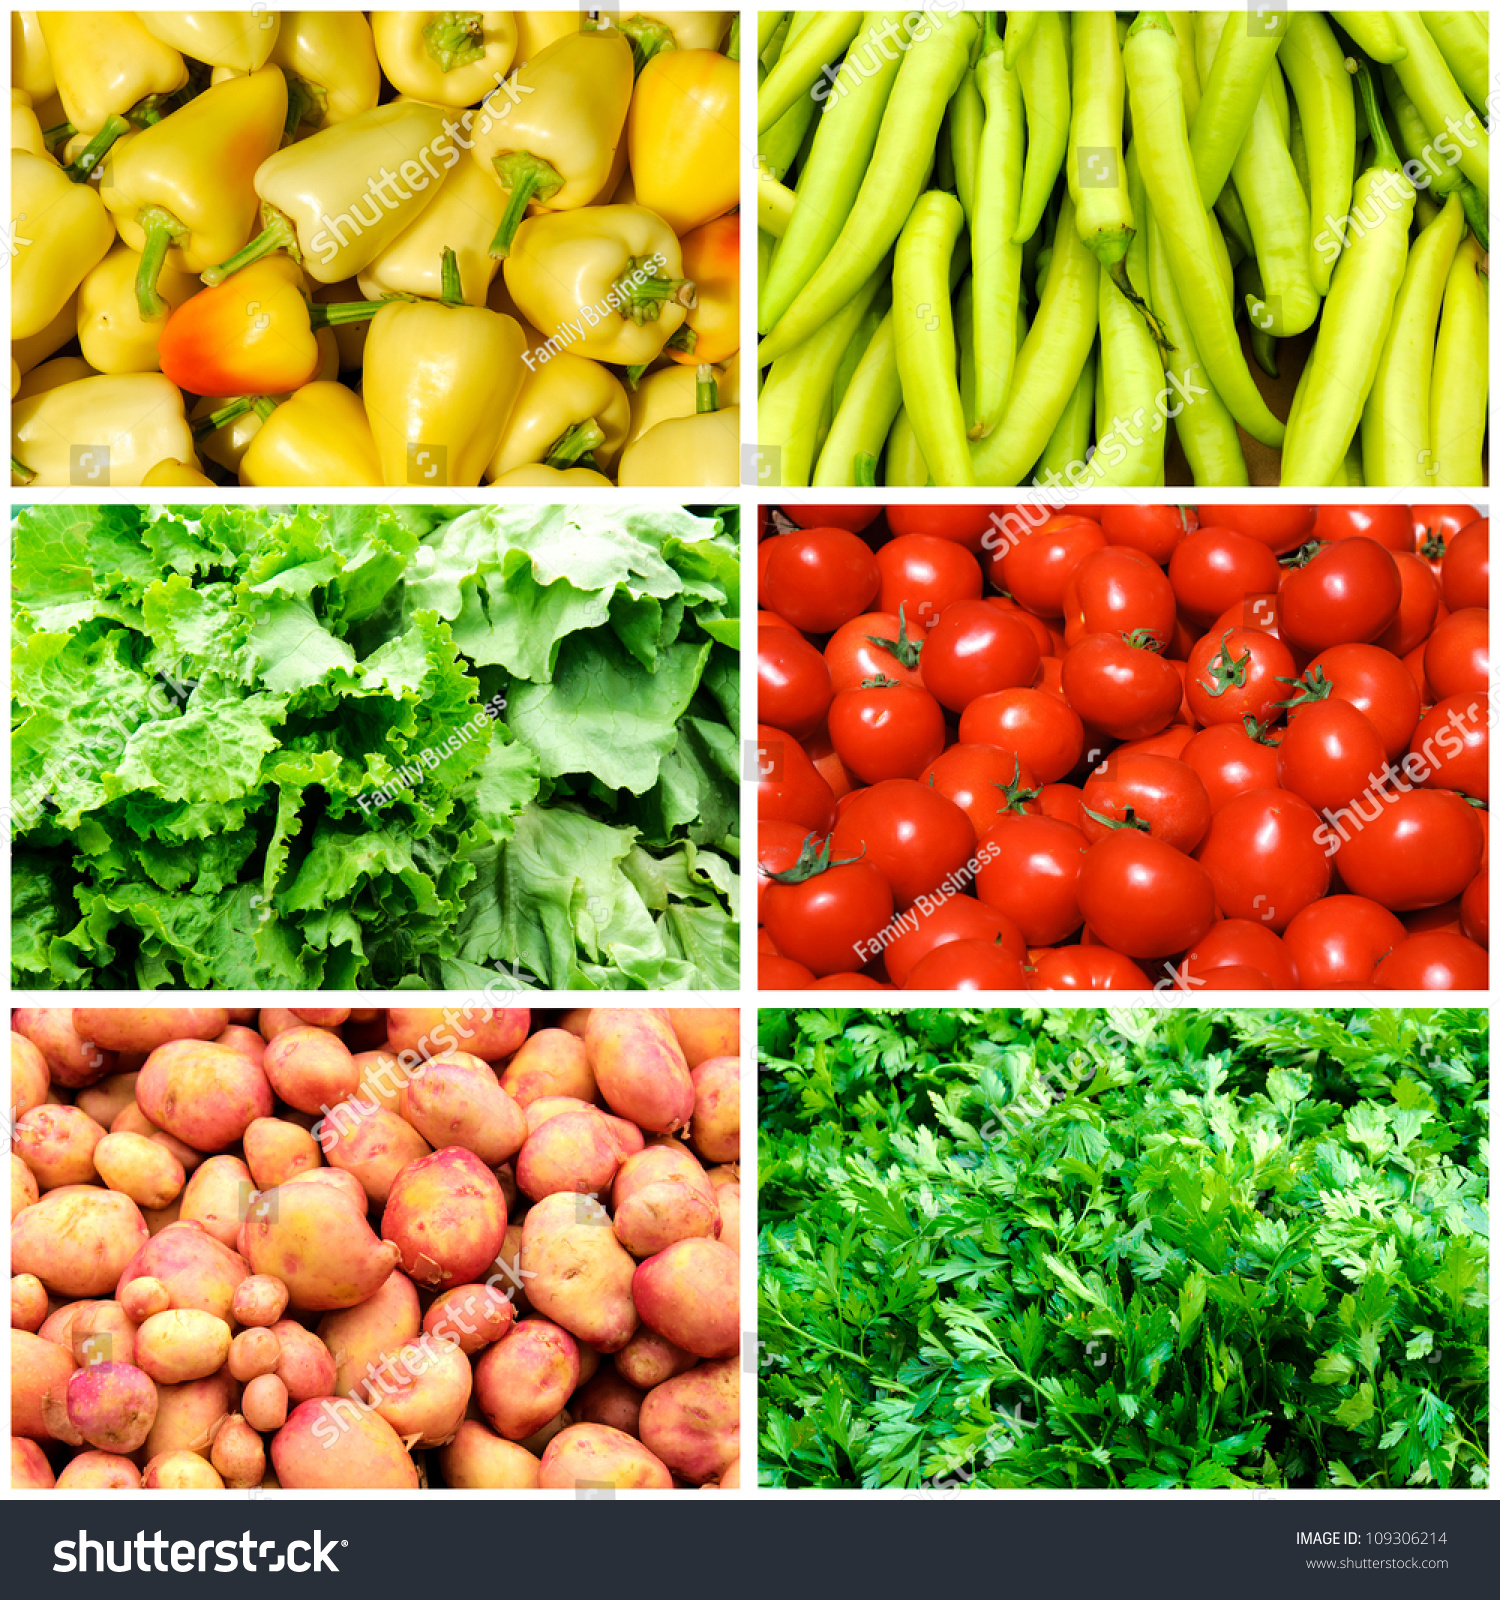 Bunch Vegetables On Collage Foto de stock (libre de regalías ...